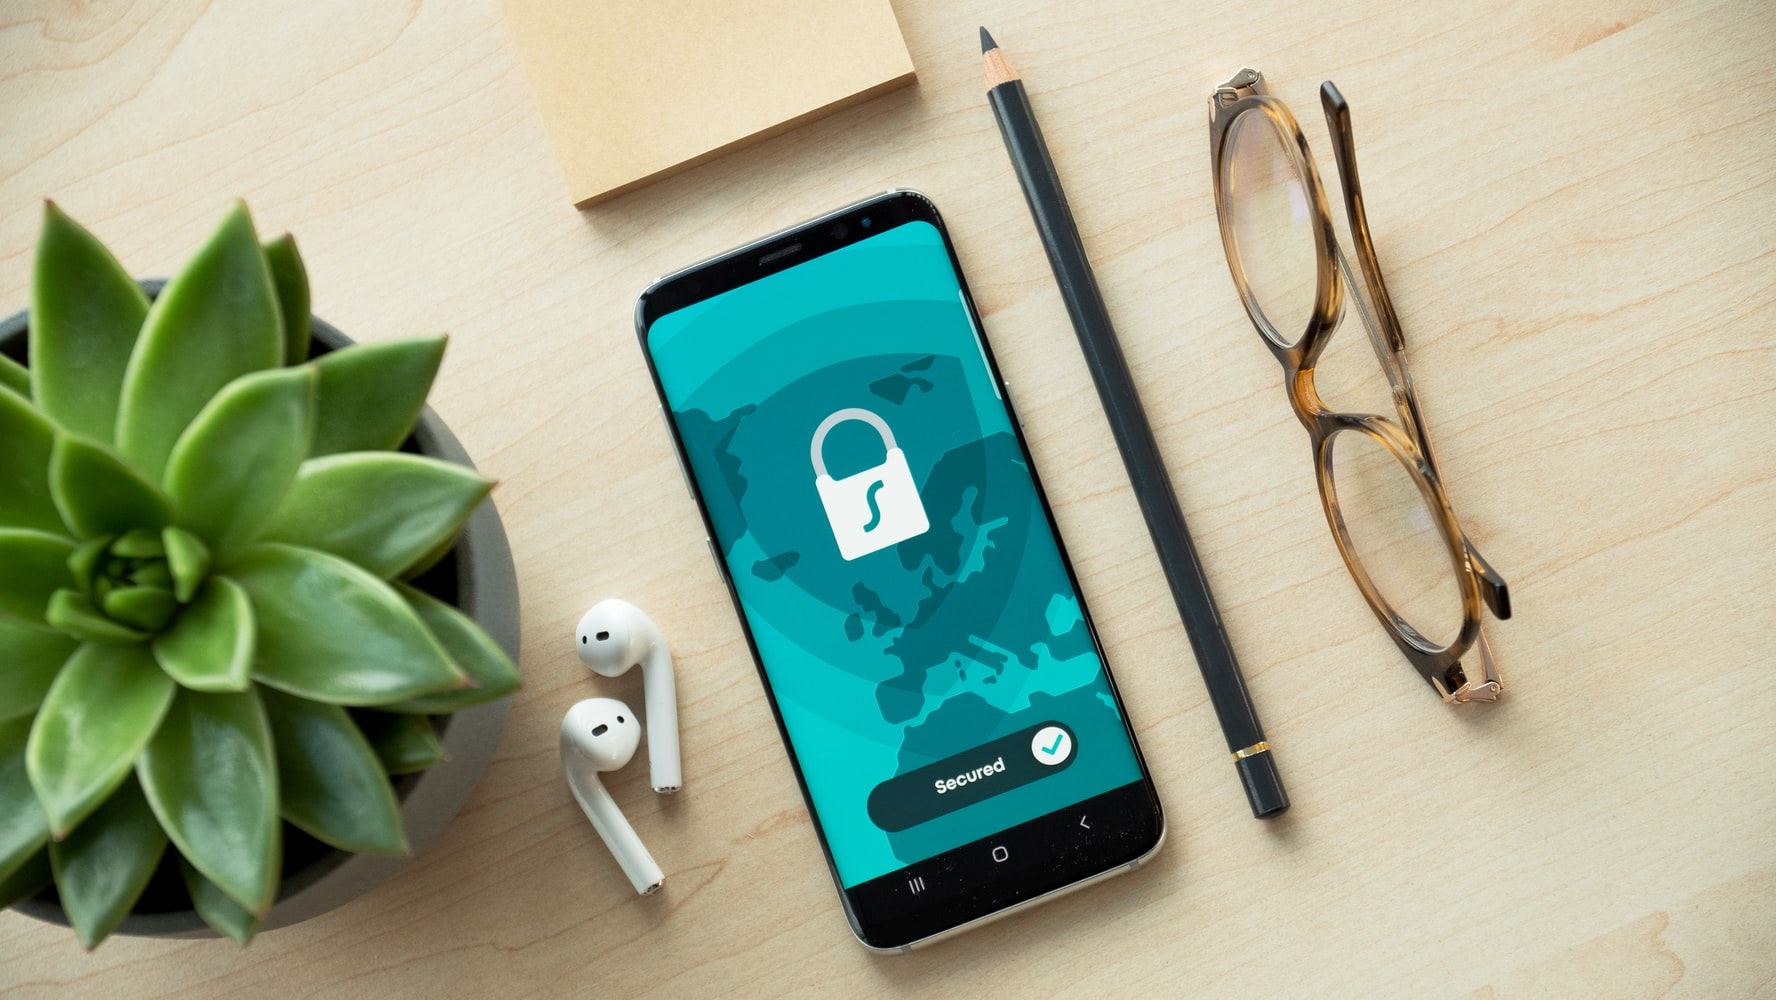 Importance of privacy and data protection